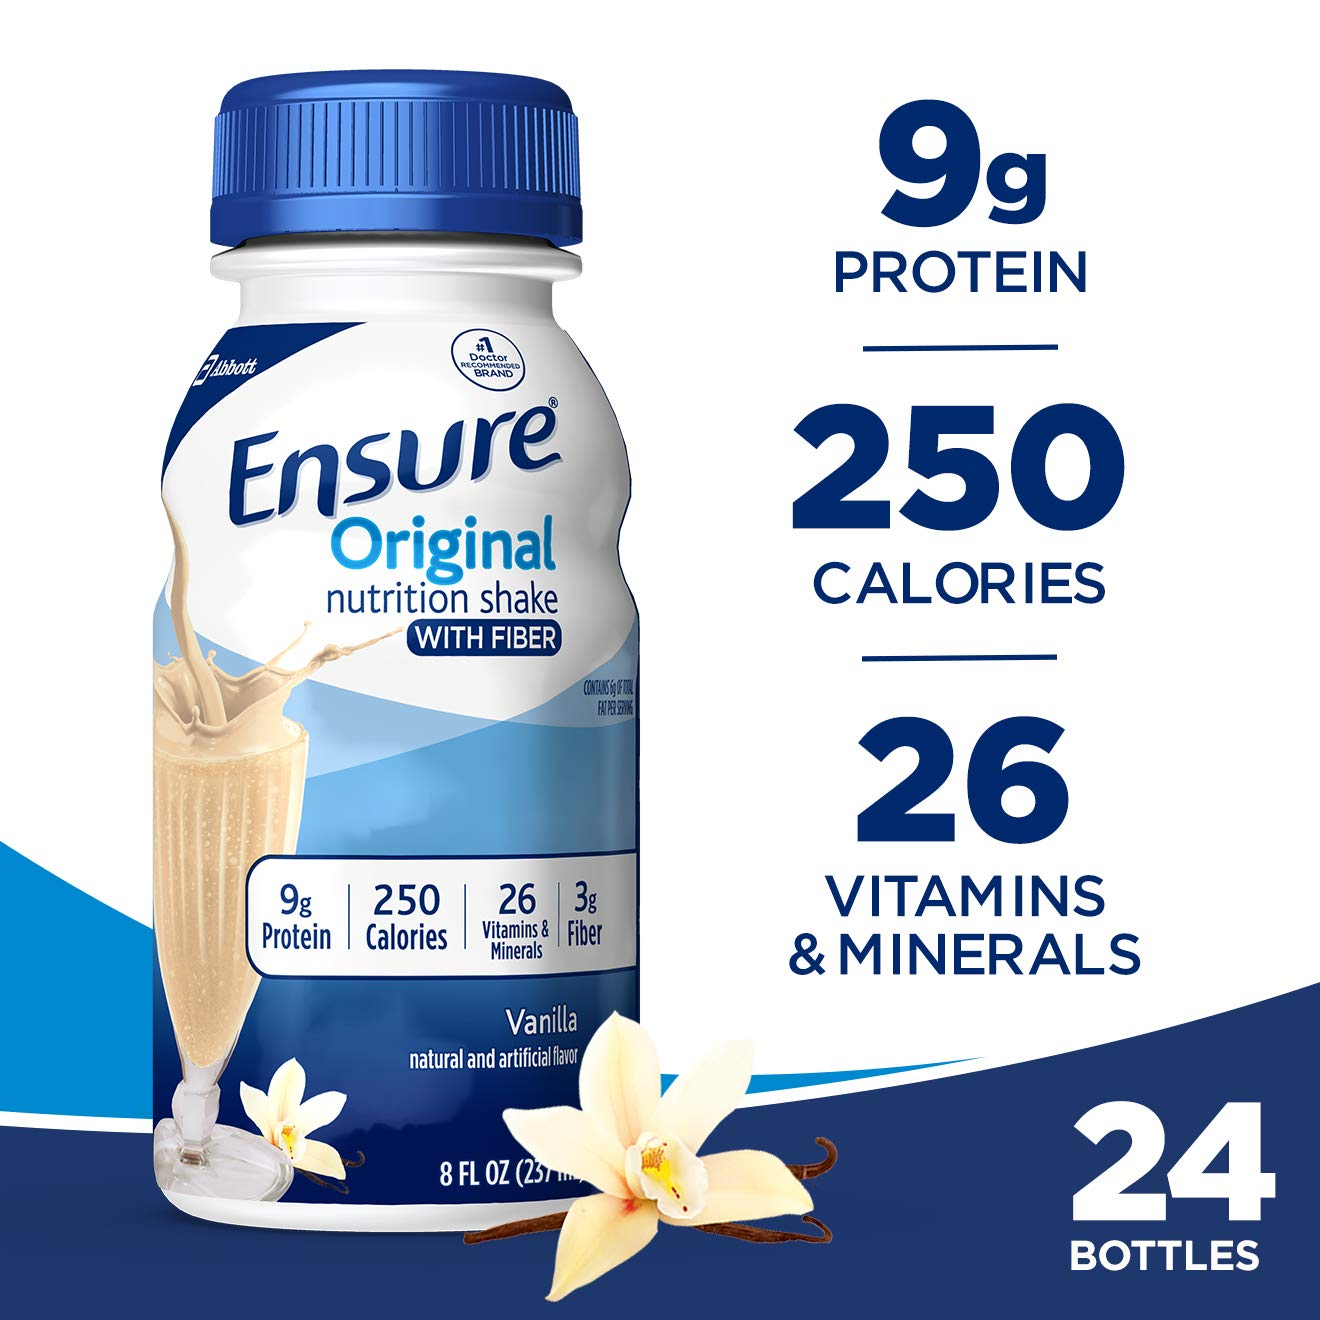 Ensure Original Nutrition Shake with Fiber, 9g High-Quality Protein, Meal Replacement Shakes, Vanilla, 8 fl oz, 24 count by Ensure Original